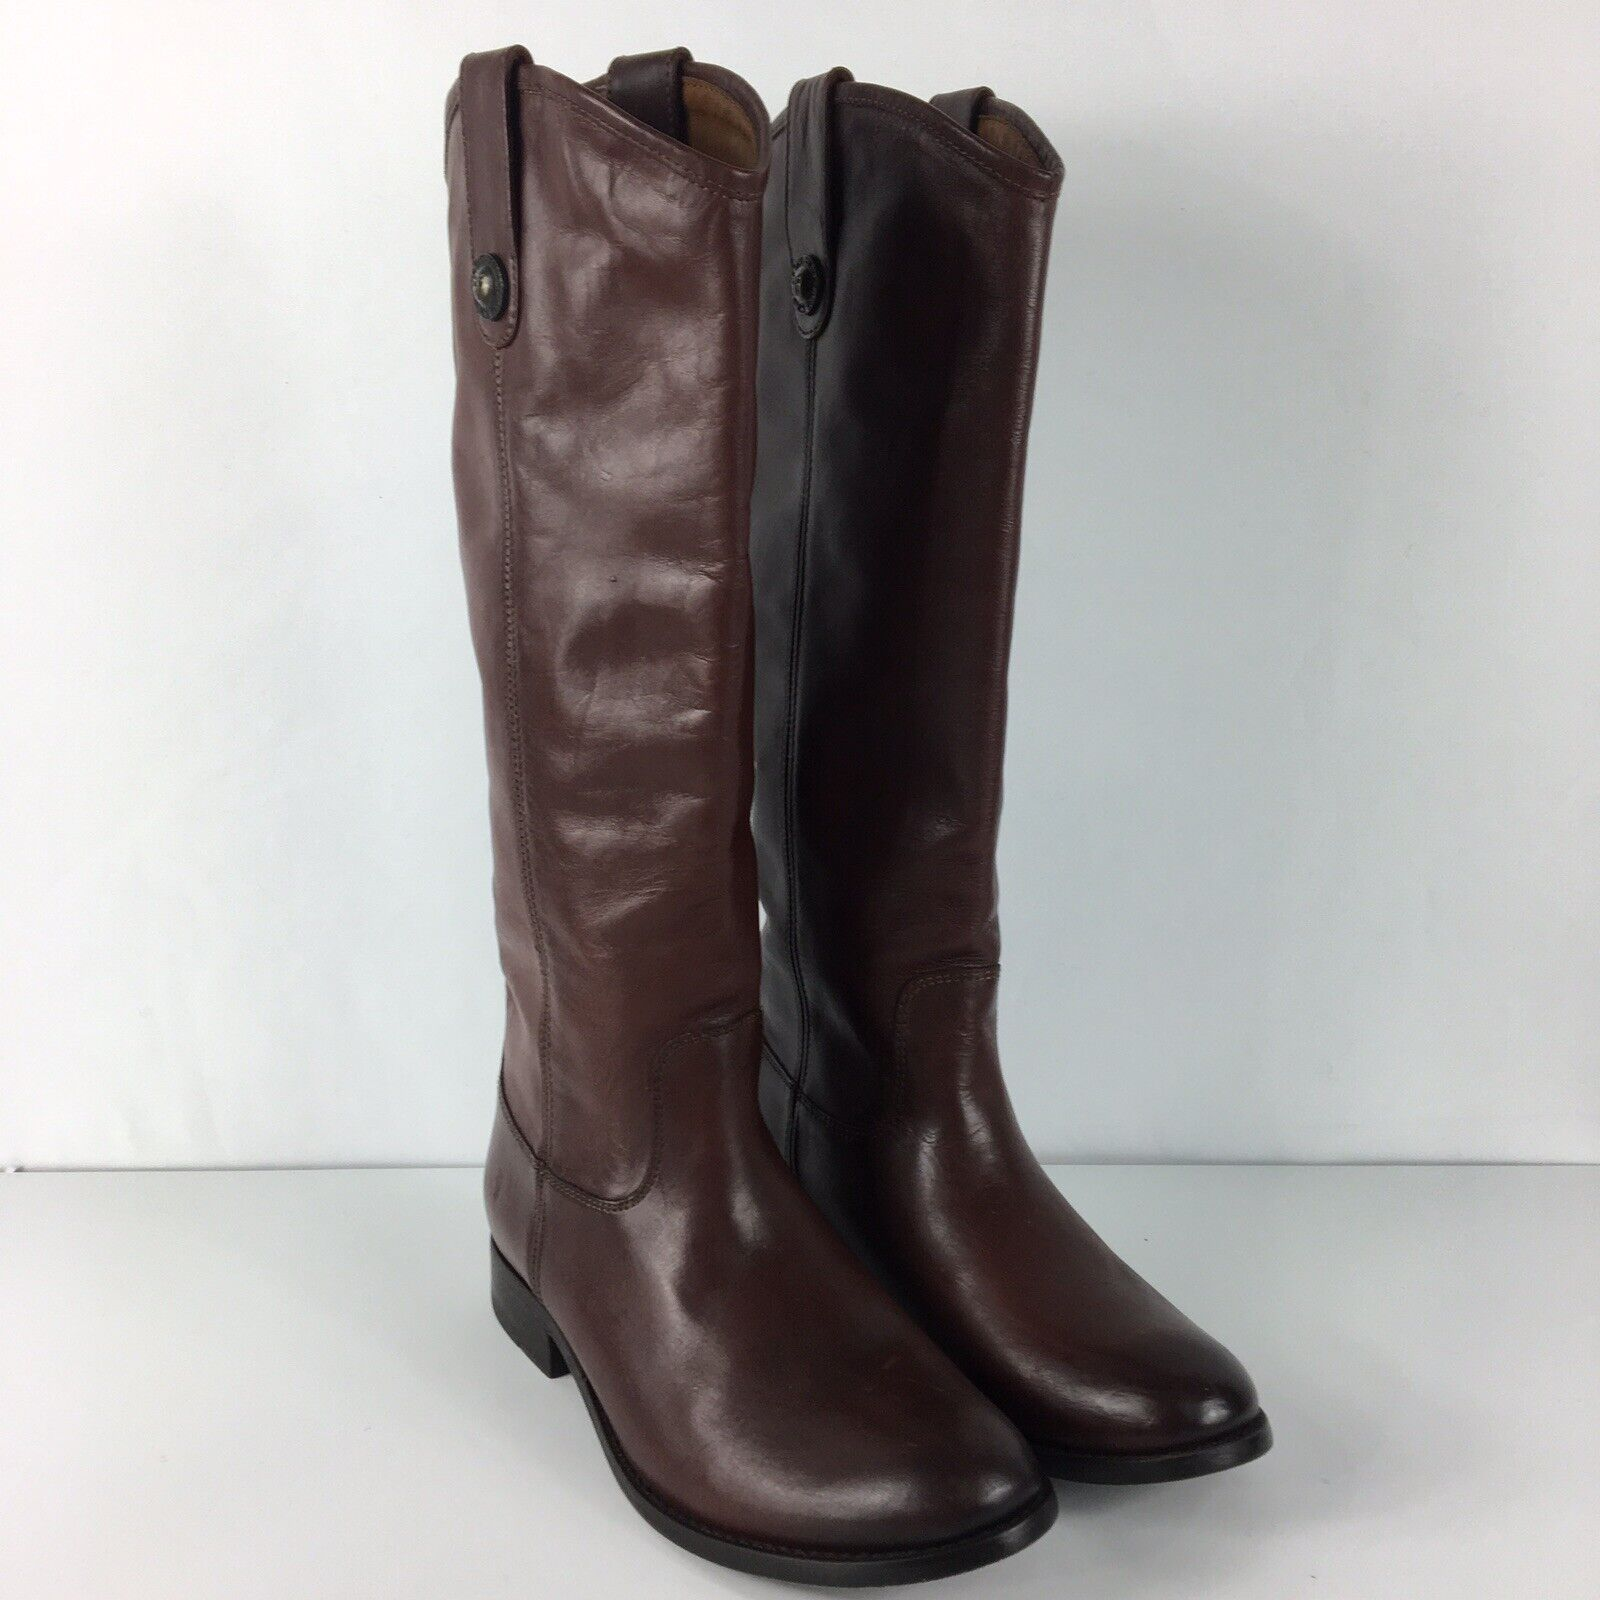 Frye Melissa Button Women's Tall Leather Riding Boots Redwood Brown Size 6